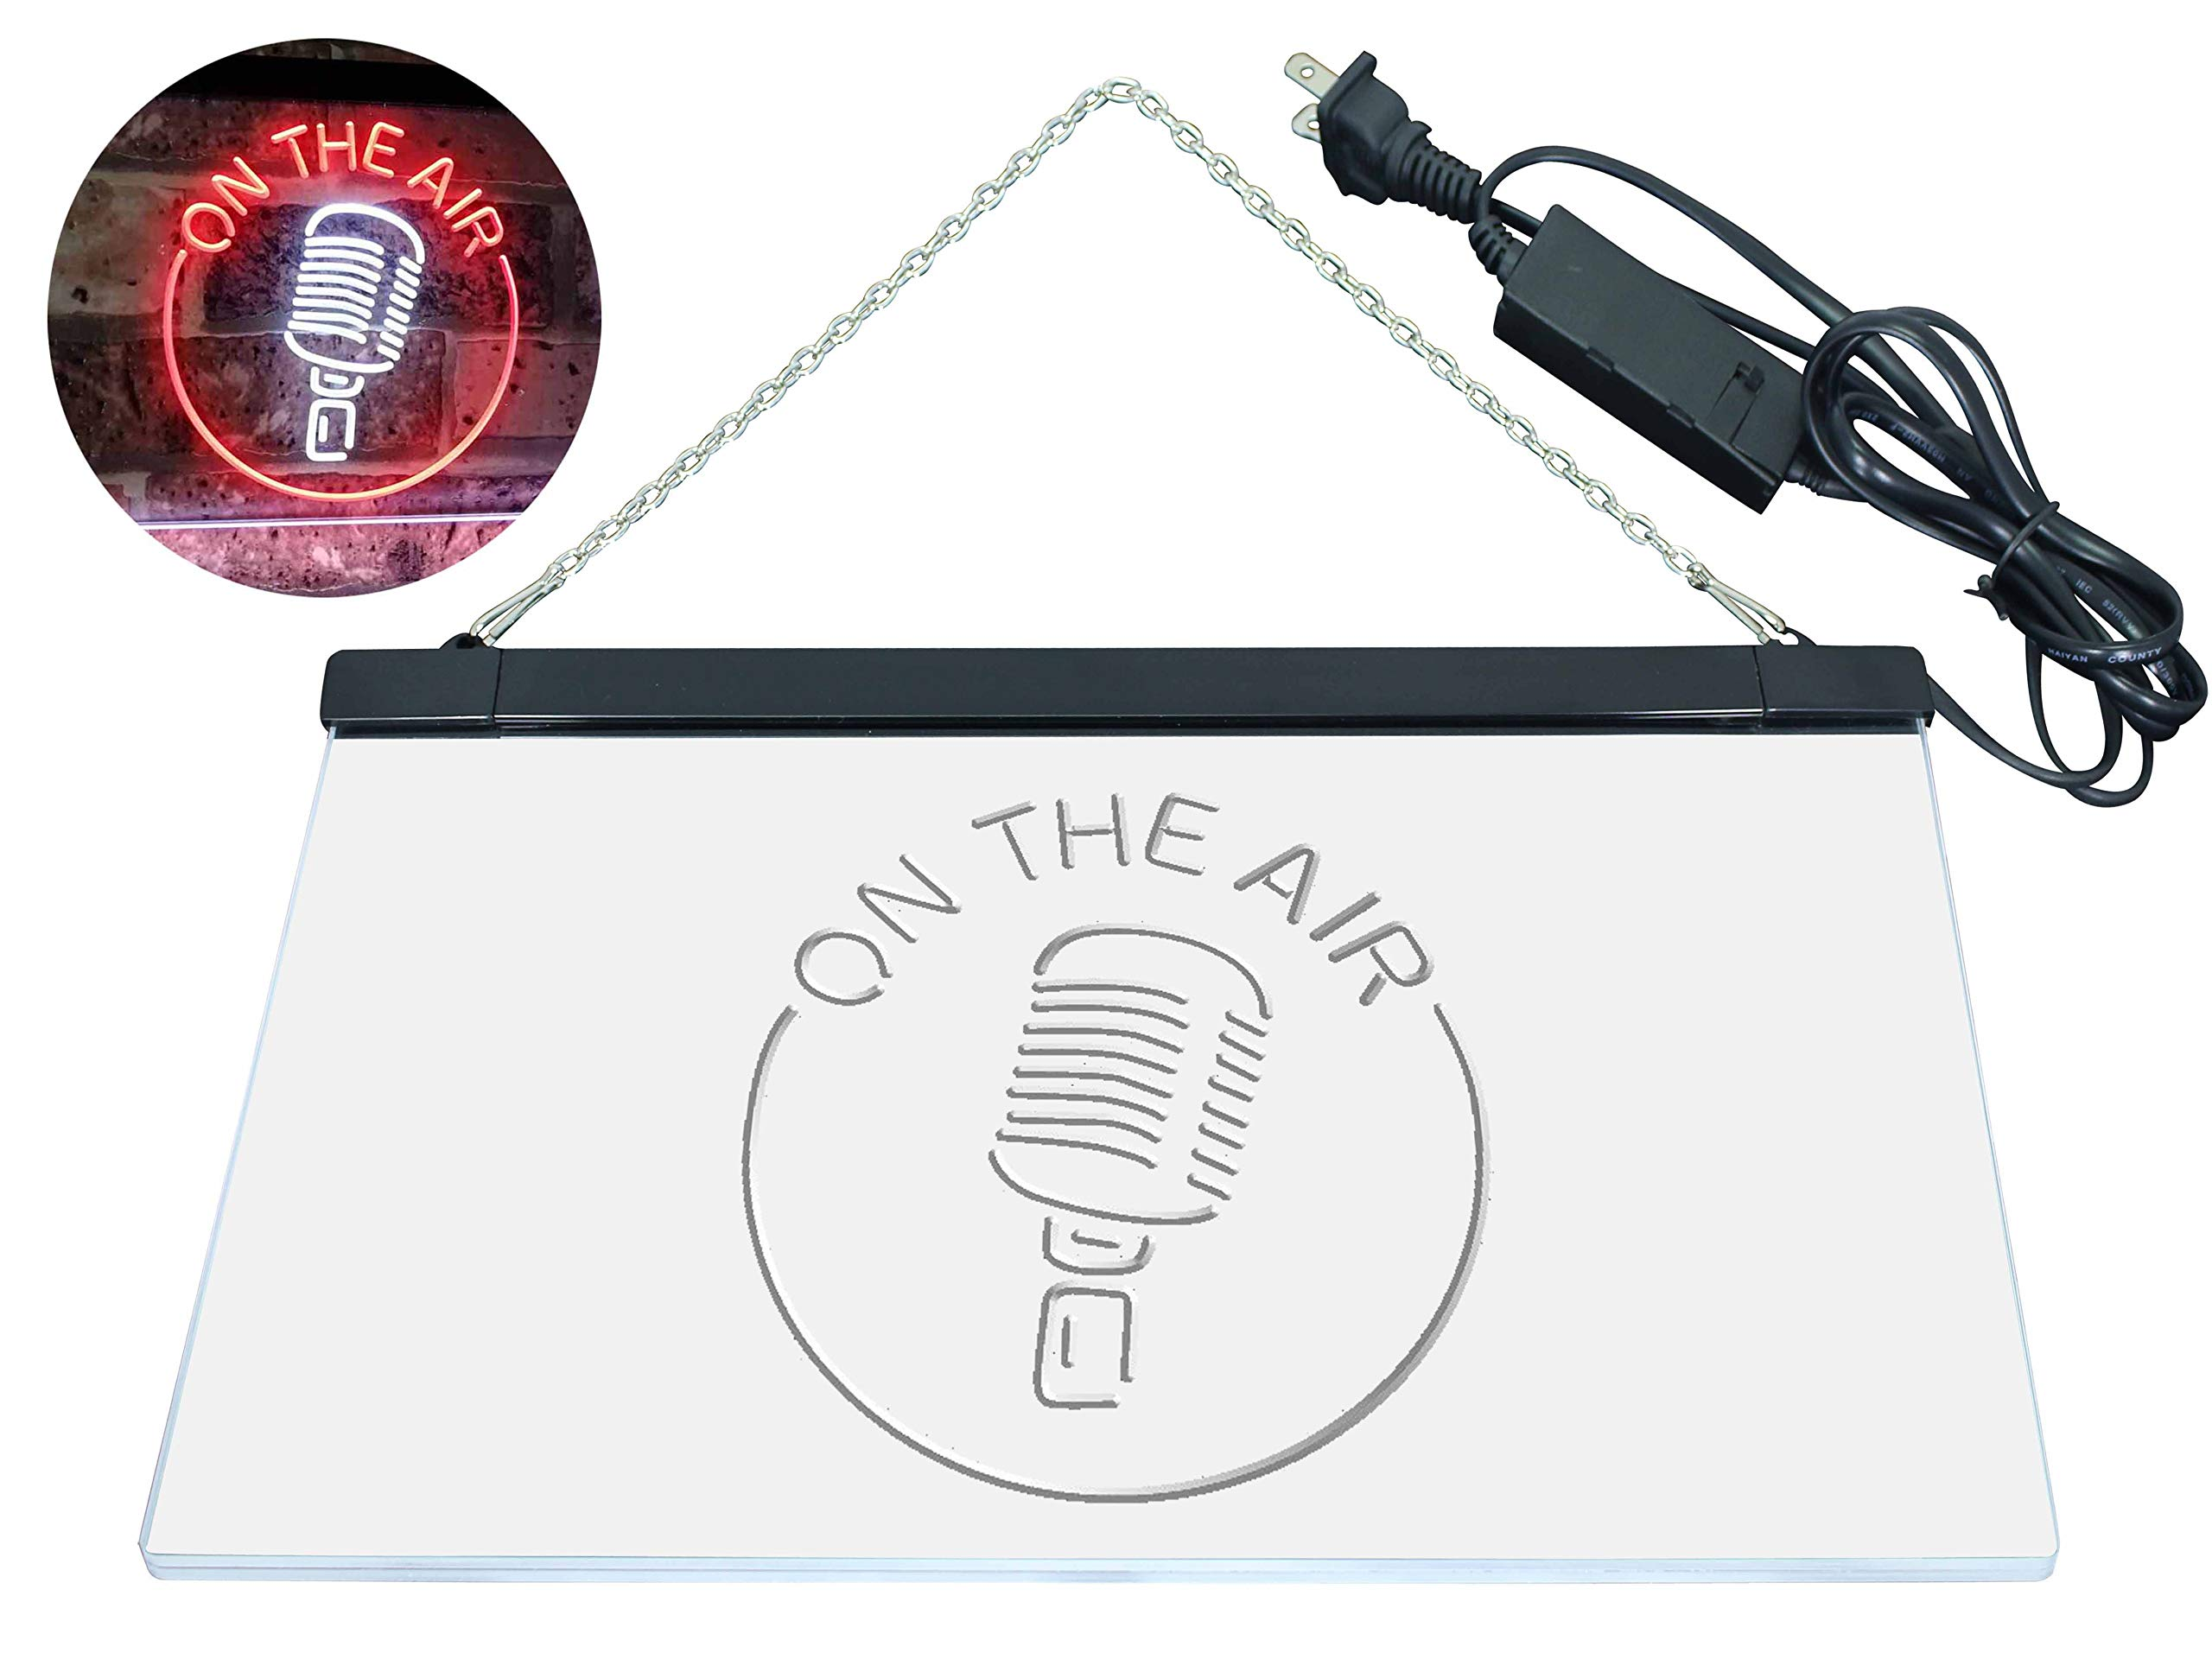 AdvpPro 2C On The Air Microphone Studio Recording Signal Dual Color LED Neon Sign White & Red 12'' x 8.5'' st6s32-m2028-wr